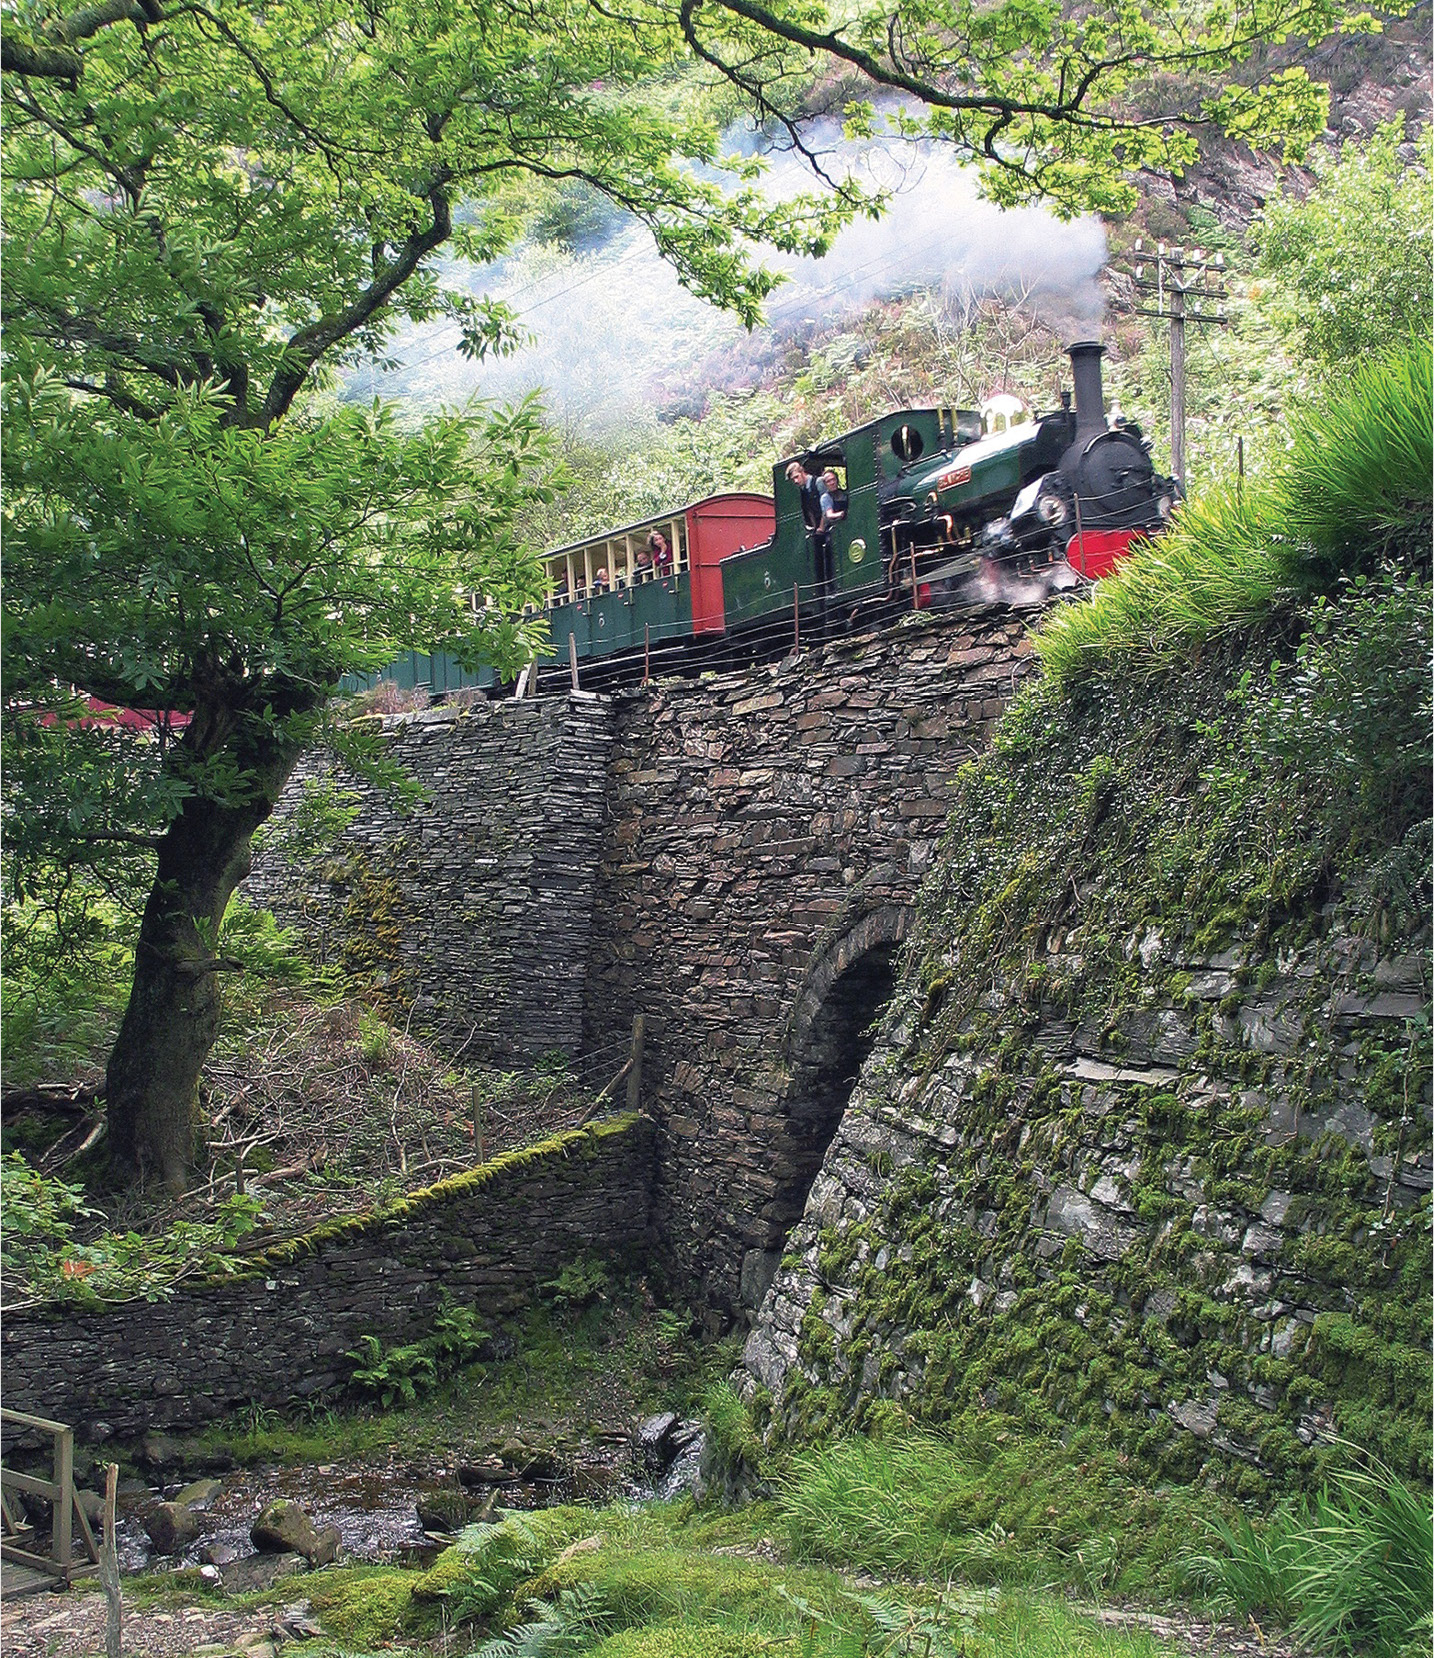 above Now a major tourist attraction, the narrow-gauge Ffestiniog railway was built in 1836 to carry slate from Ffestiniog to Porthmadog Harbour. The 2ft (0.6m) gauge was a practical response to the challenges of creating a railway track in mountainous terrain. Contemporary with Brunel's pioneering Great Western Railway, the Ffestiniog influenced the design of narrow-gauge railways around the world, including the Darjeeling Himalayan Railway, which was inscribed in the World Heritage list in 1999.